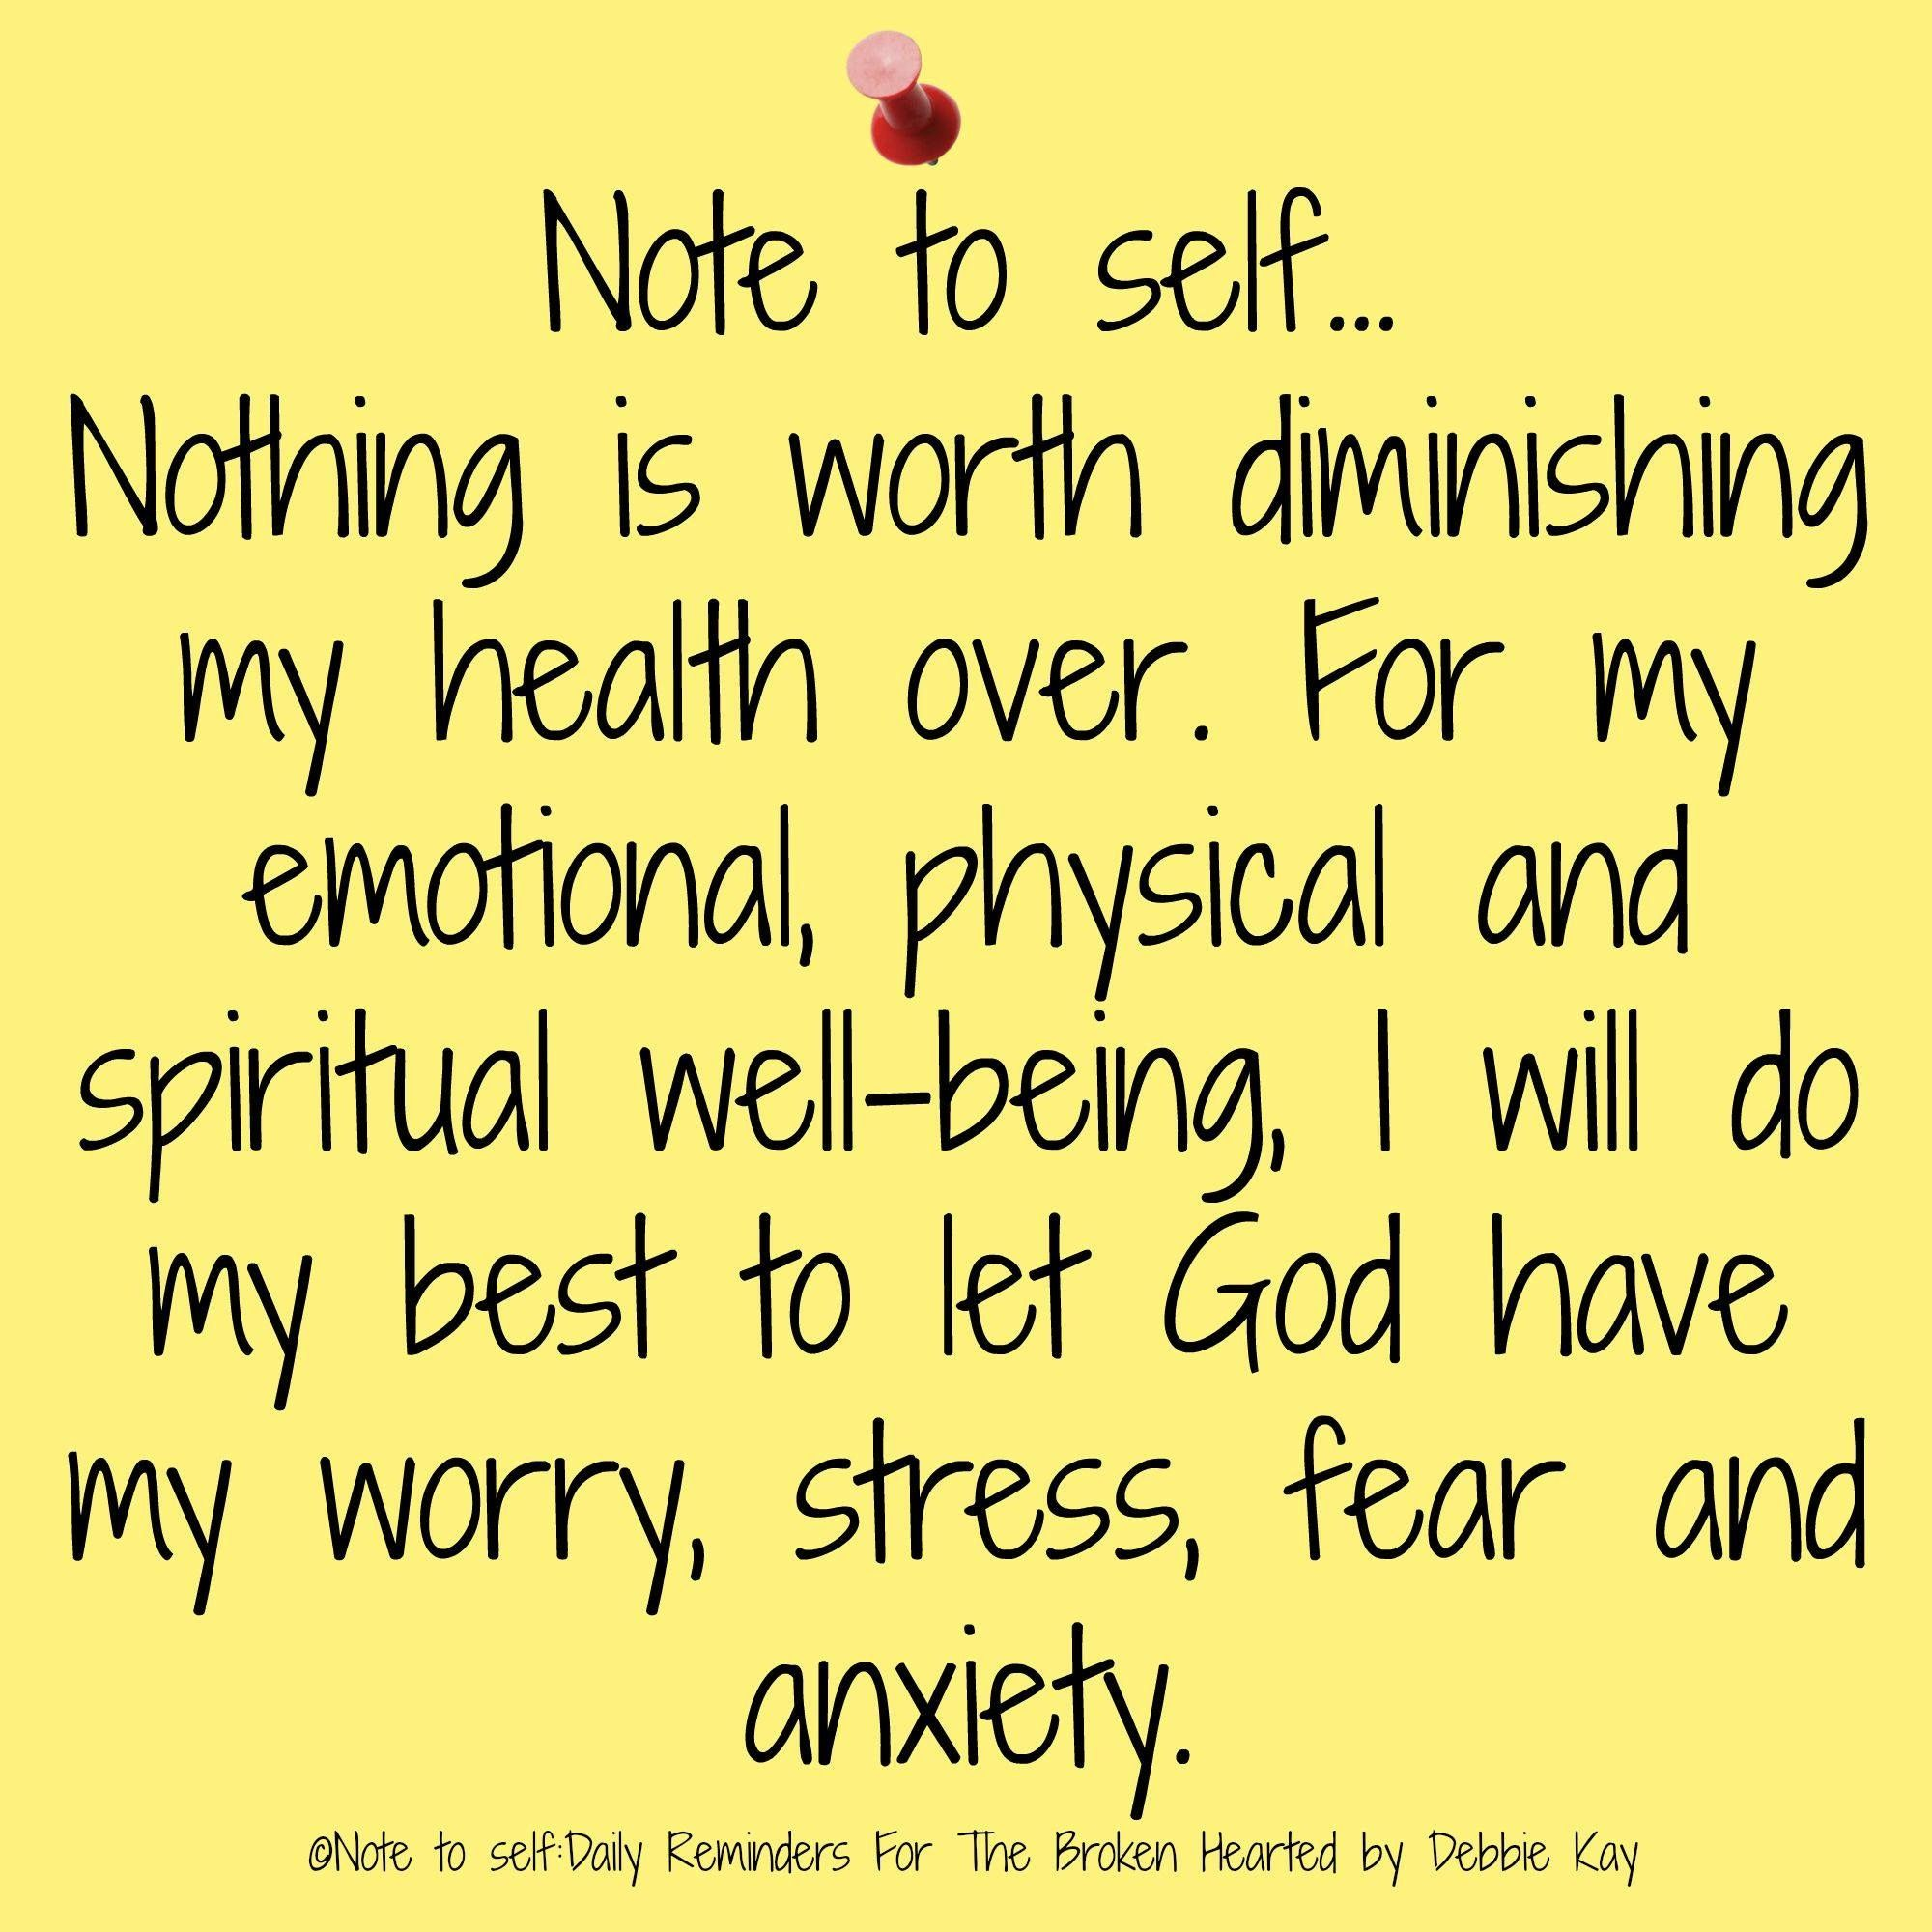 Bible Quotes About Anxiety And Stress: Health And Well Being.